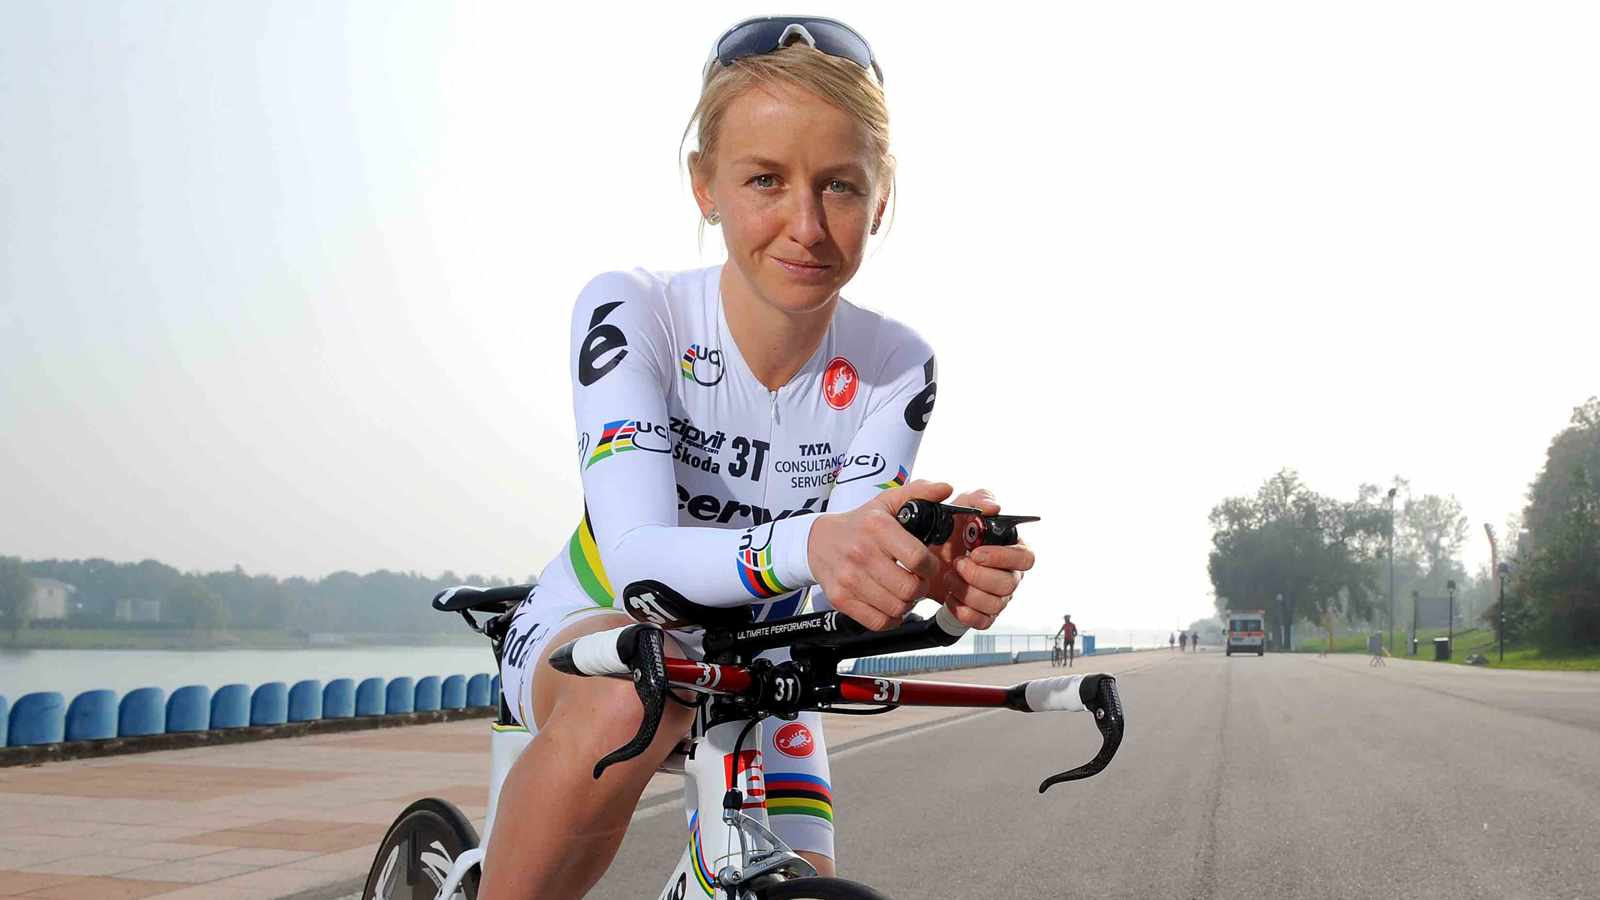 Pooley will be attending the Breeze Challenge Event in Lancashire to help spur more women into cycling